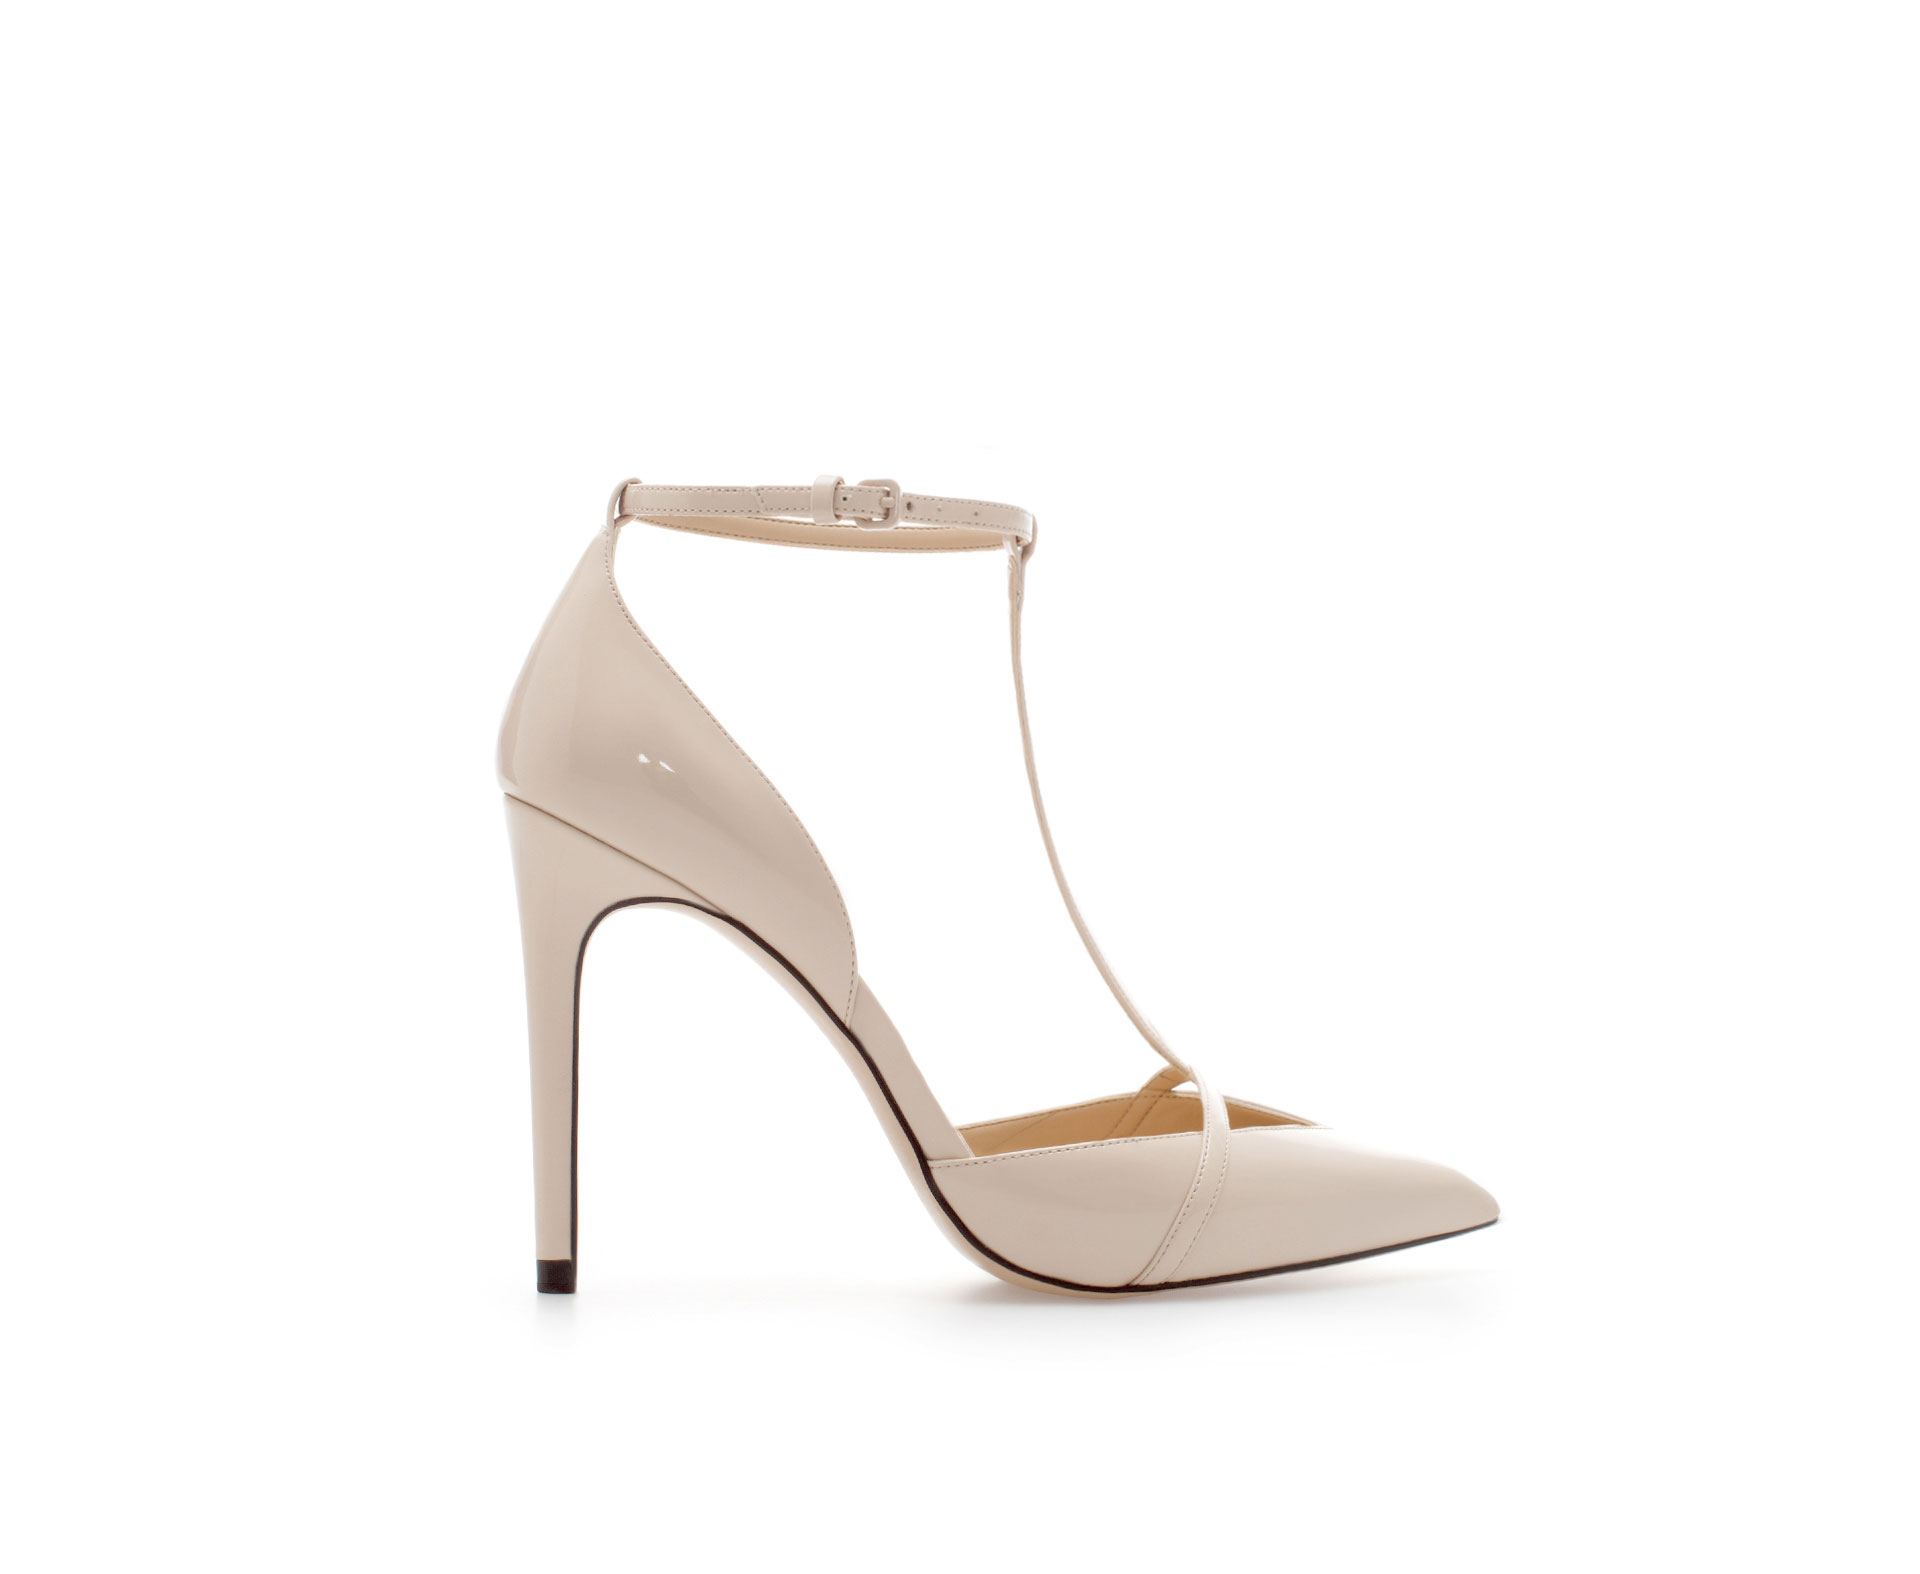 Zara Low Cut T-bar Synthetic Patent Leather Court Shoe in